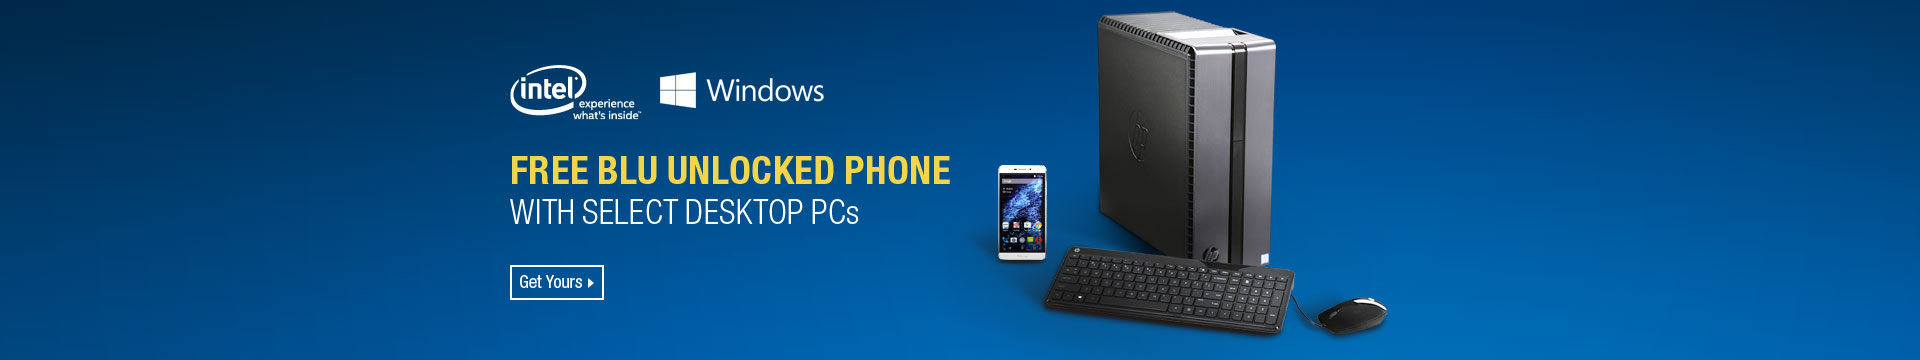 FREE BLU UNLOCKED PHONE with Select Desktop PCs